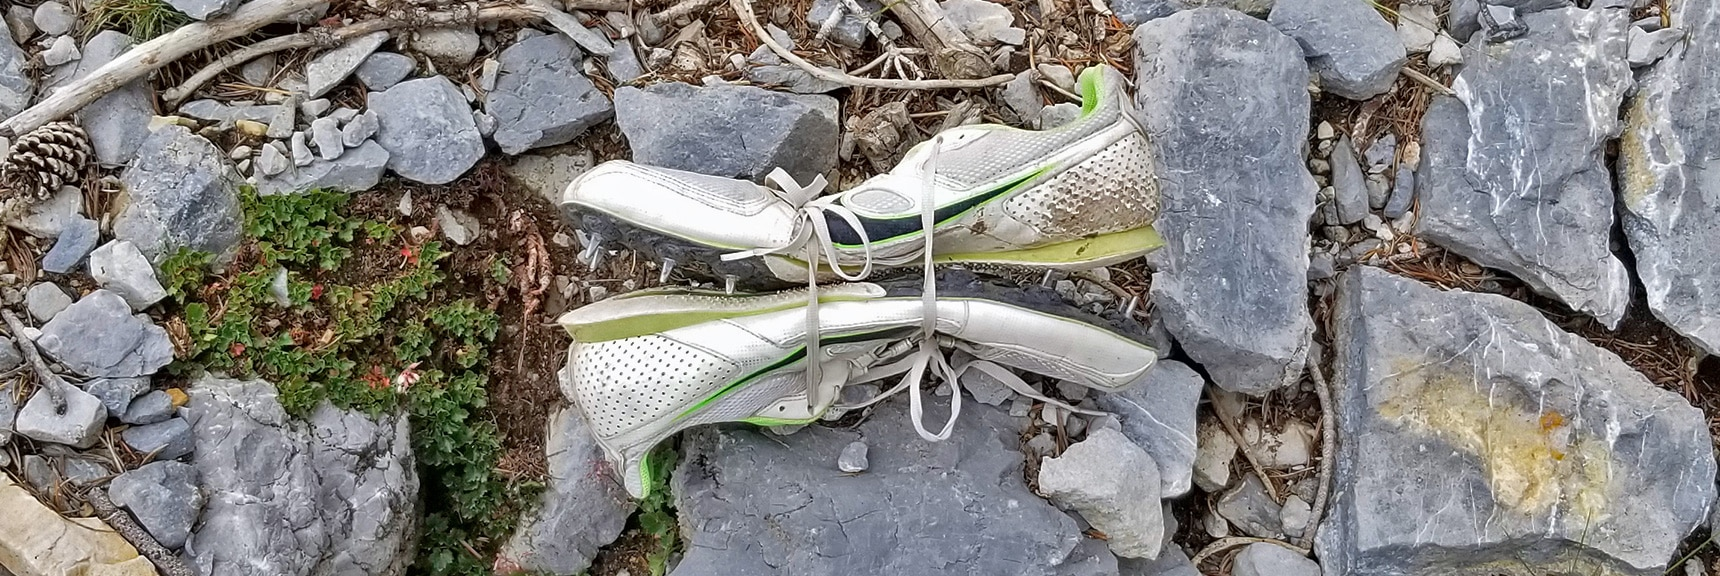 Inch Long Spiked Racing Shoes Provide Excellent Traction on Mummy's NE Avalanche Cliff Chute | Mummy Mountain NE Cliffs Descent | Mt Charleston Wilderness | Spring Mountains, Nevada